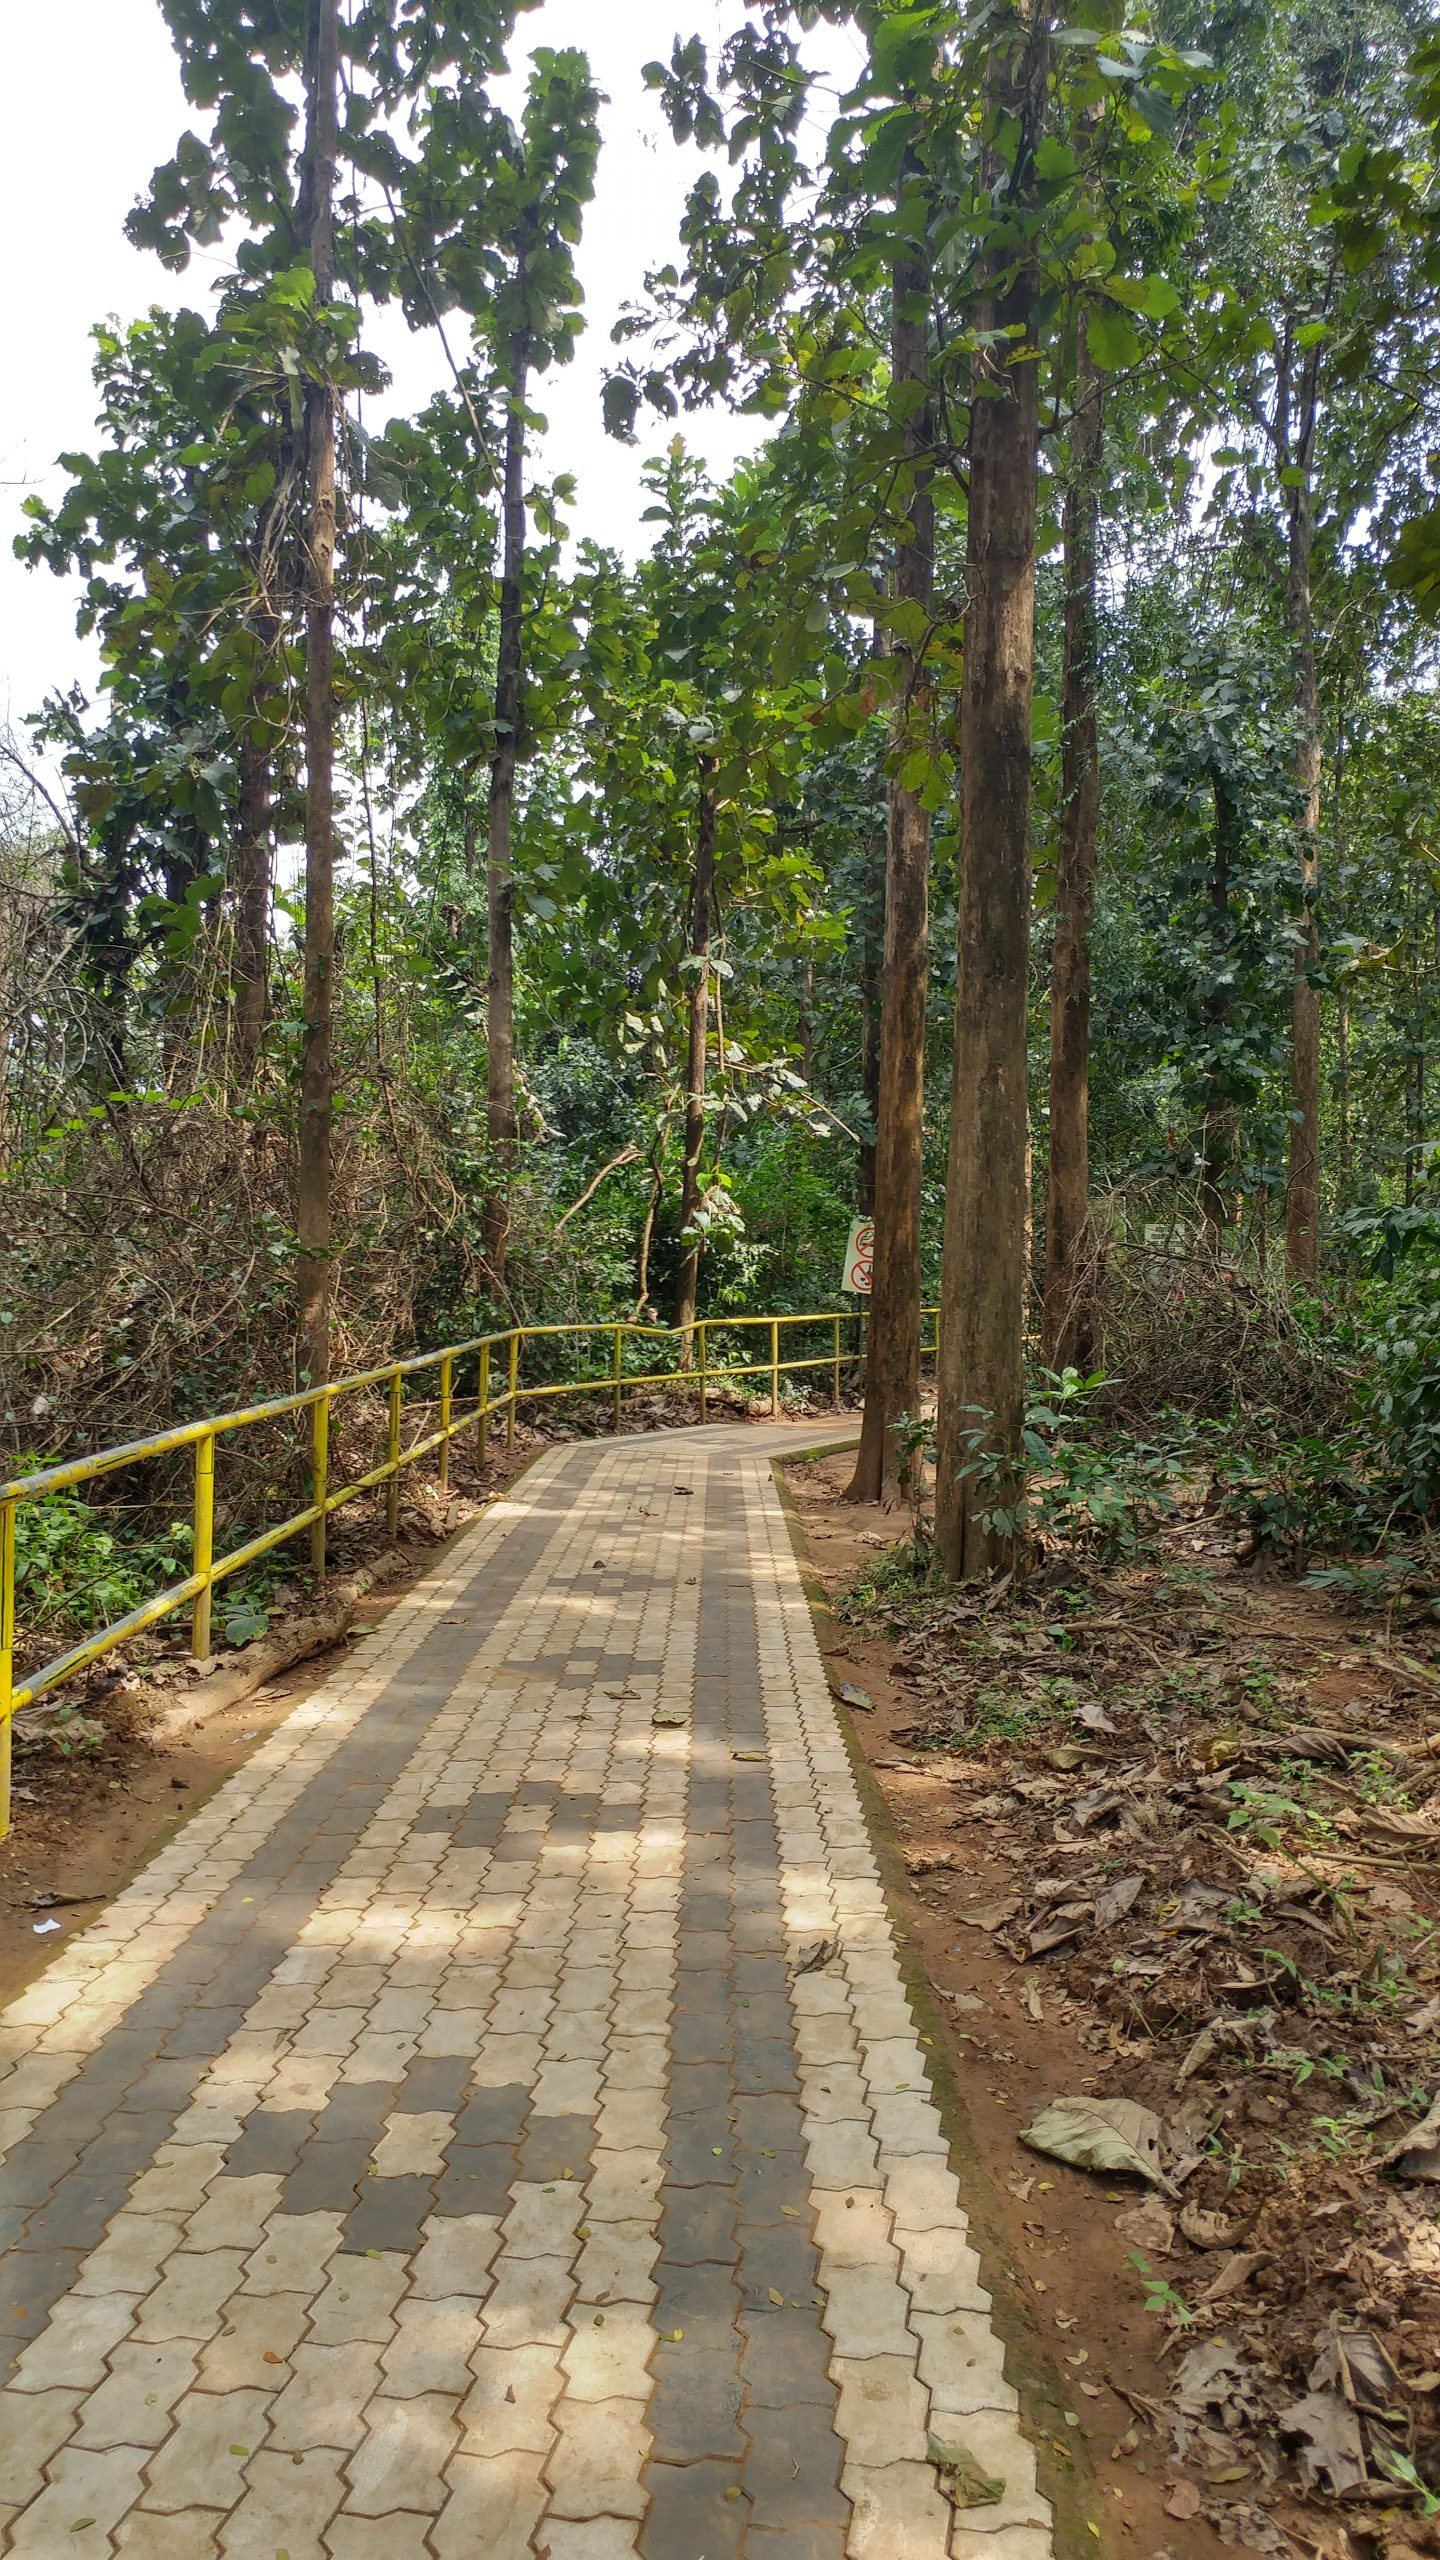 Walkway in the Forest